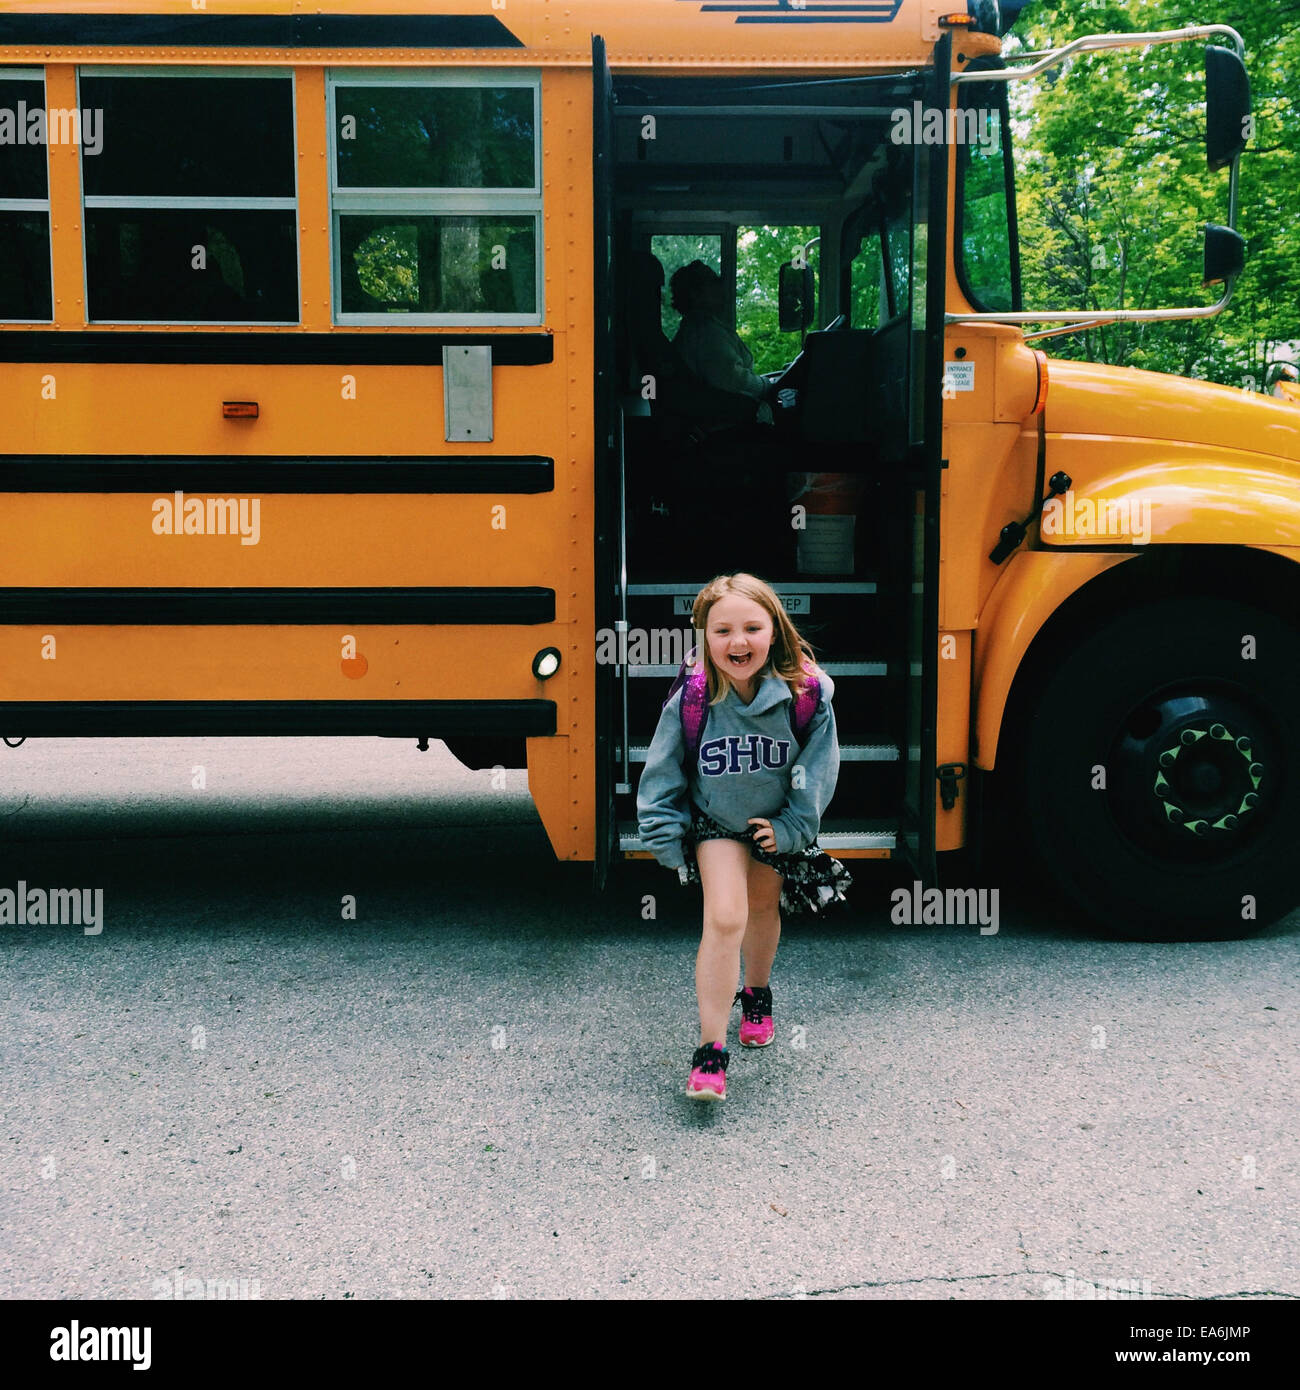 Smiling Girl getting off school bus, Wisconsin, America, USA - Stock Image